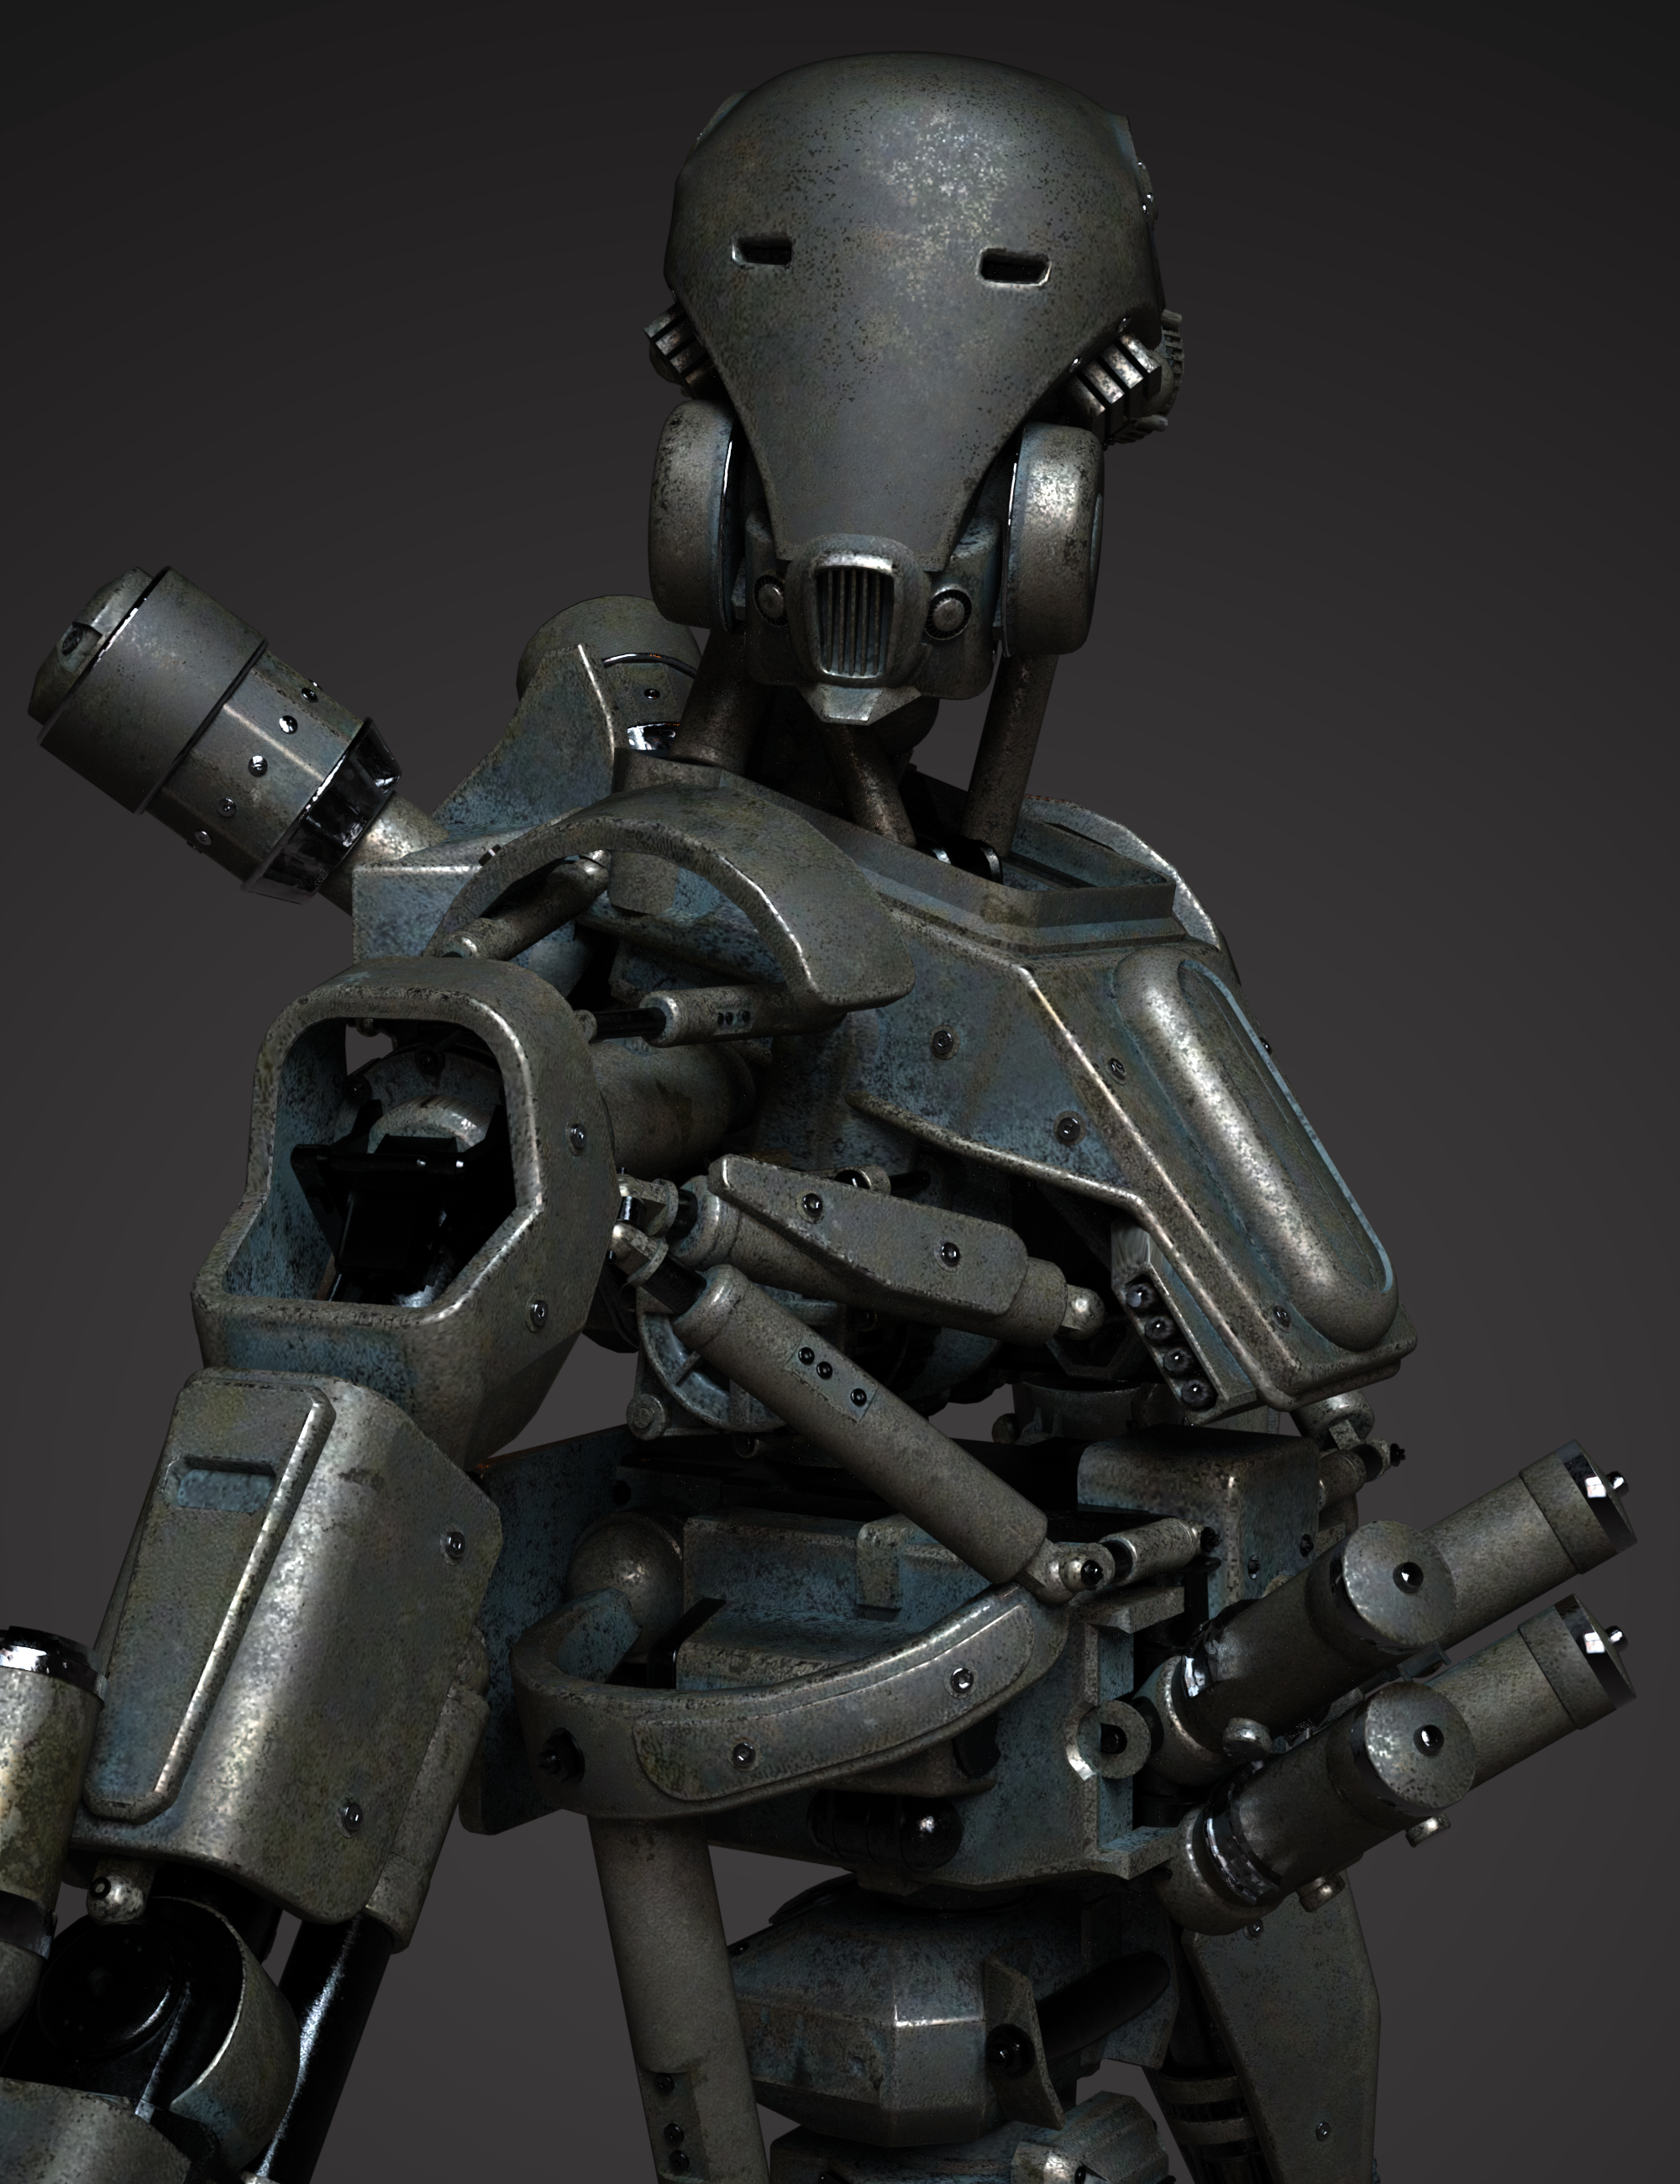 SED10 Apocalypse Textures for Cyborg Generations 8 by: Moonscape GraphicsSade, 3D Models by Daz 3D